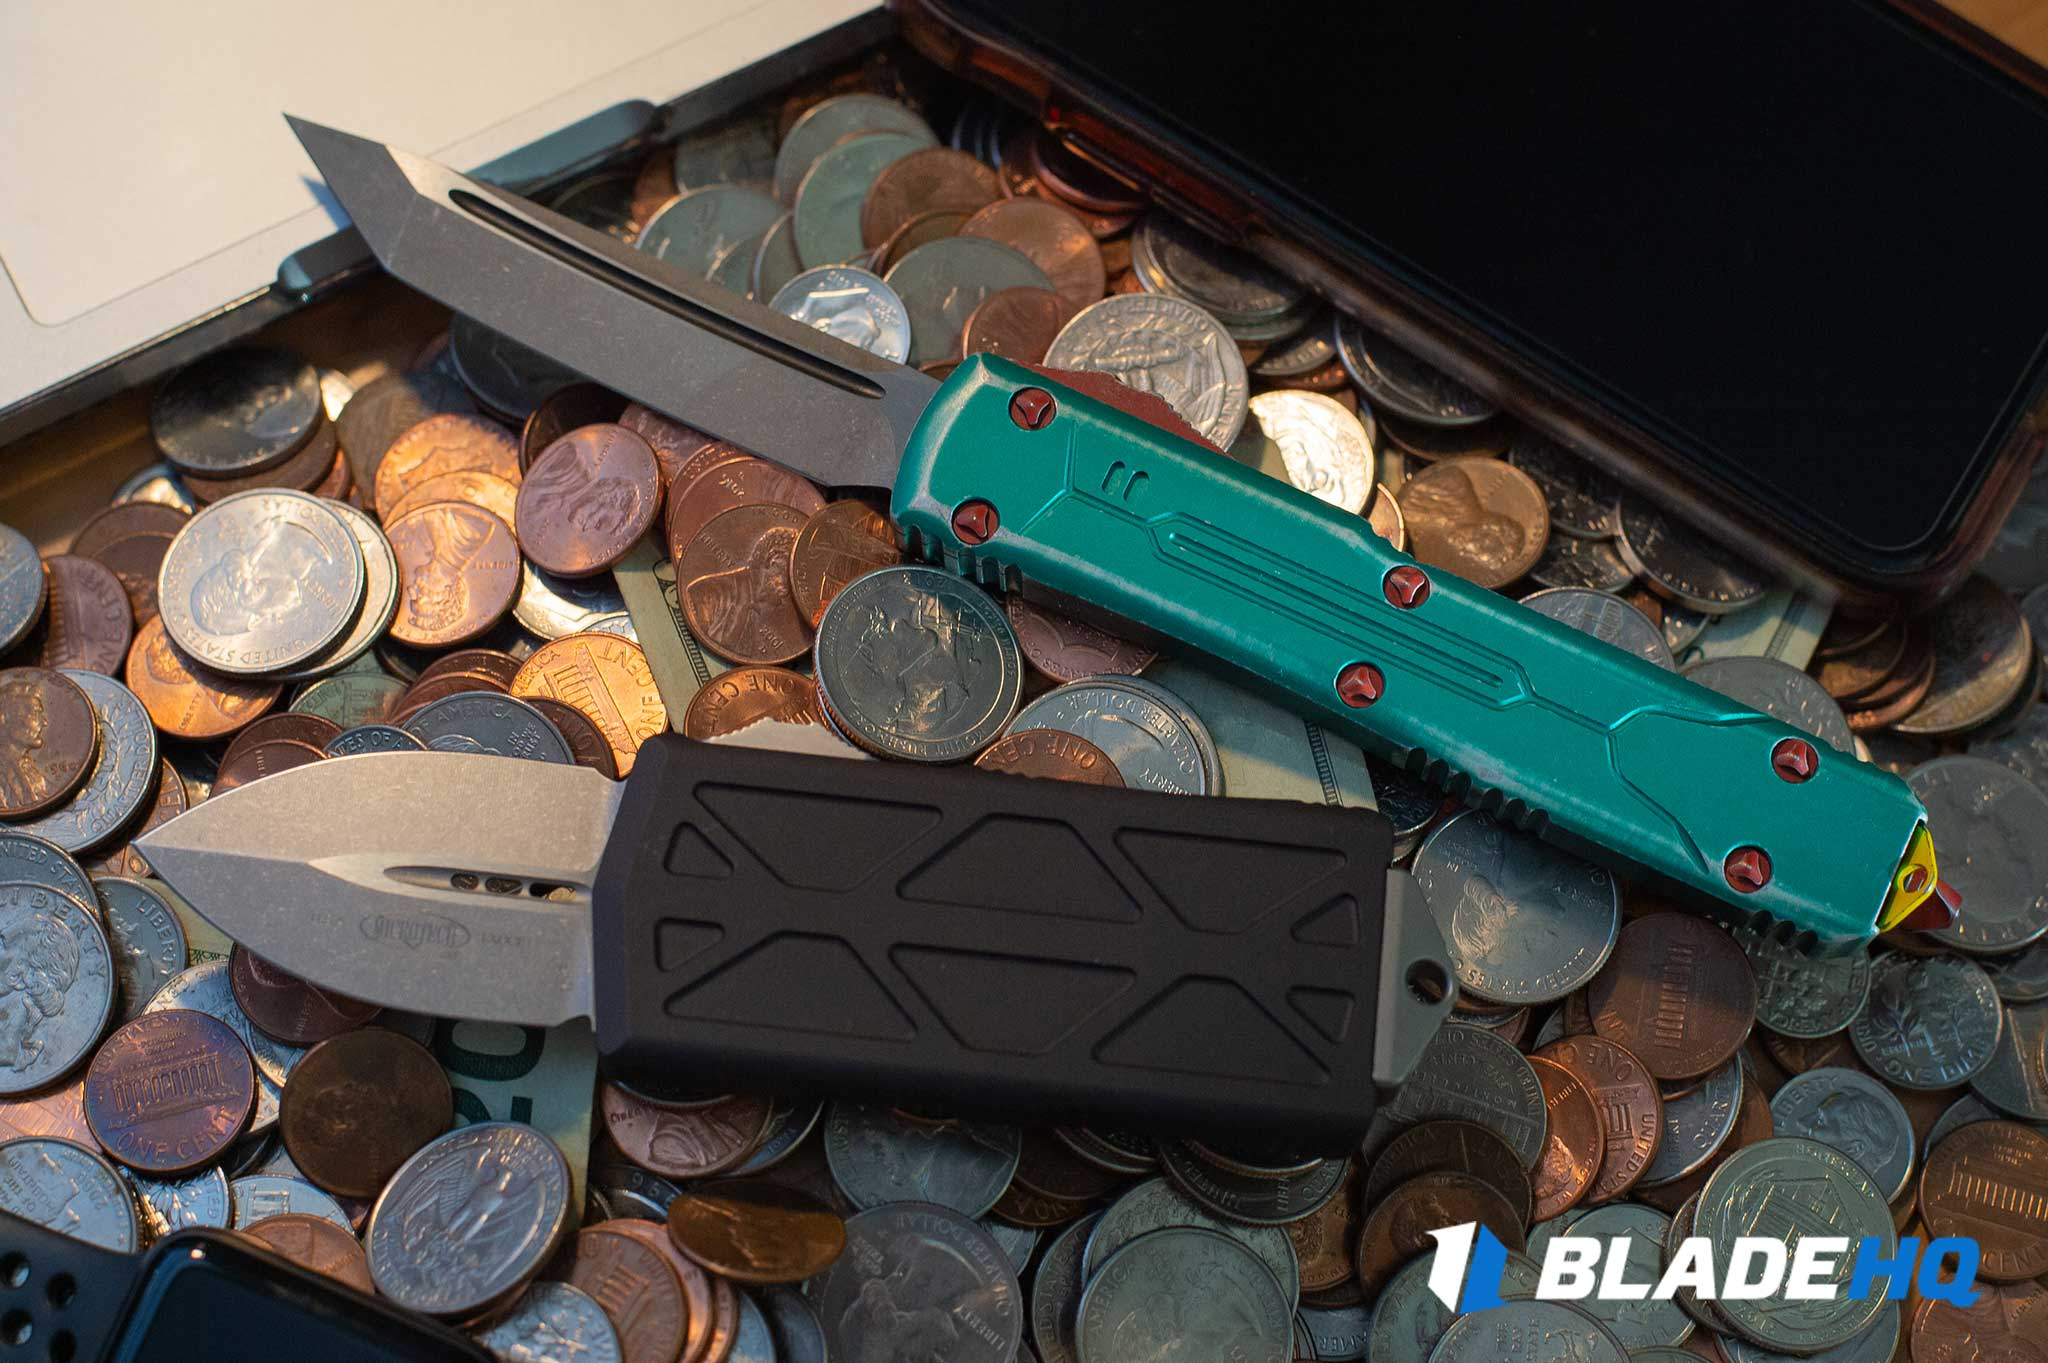 Microtech Exocet Knife Deployment/Lockup